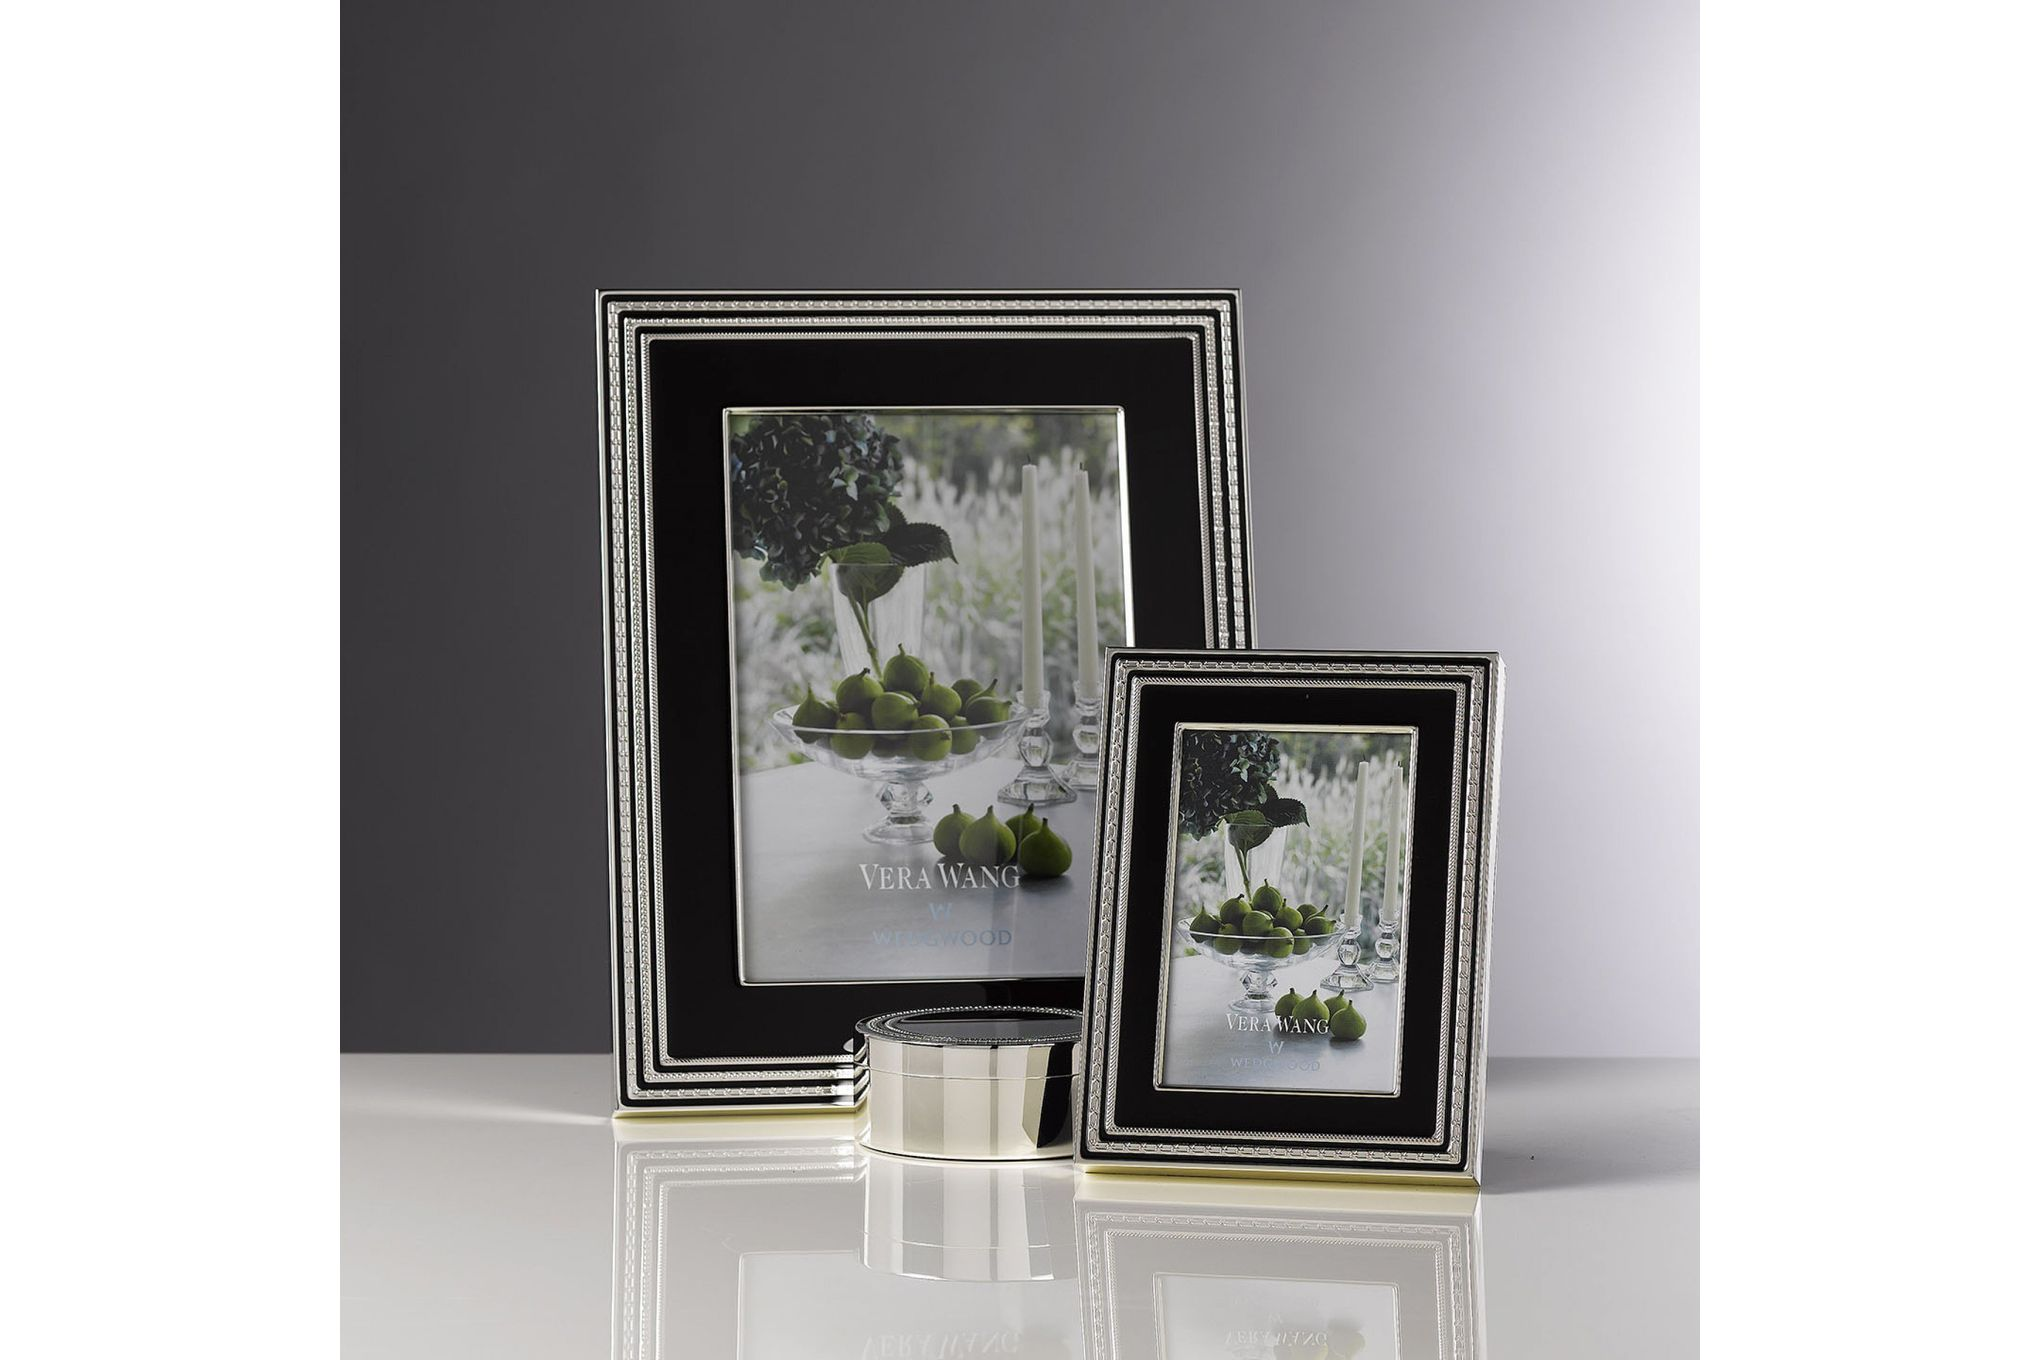 """Vera Wang for Wedgwood Gifts & Accessories Photo Frame With Love Noir 8 x 10"""" thumb 2"""